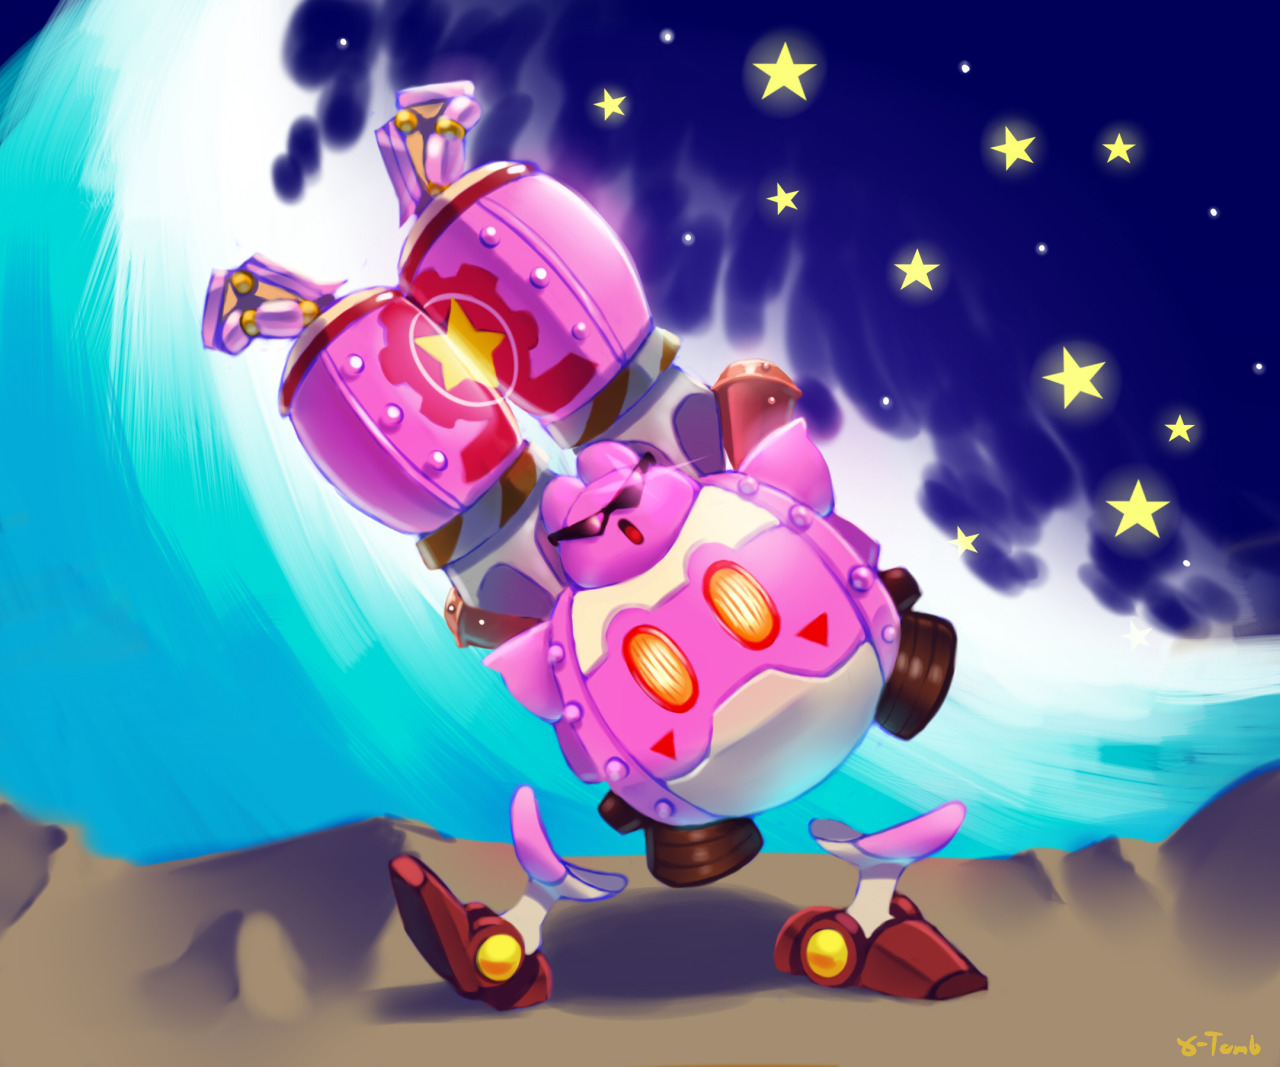 Kirby Planet Robobot Pink Cartoon Art Computer Wallpaper